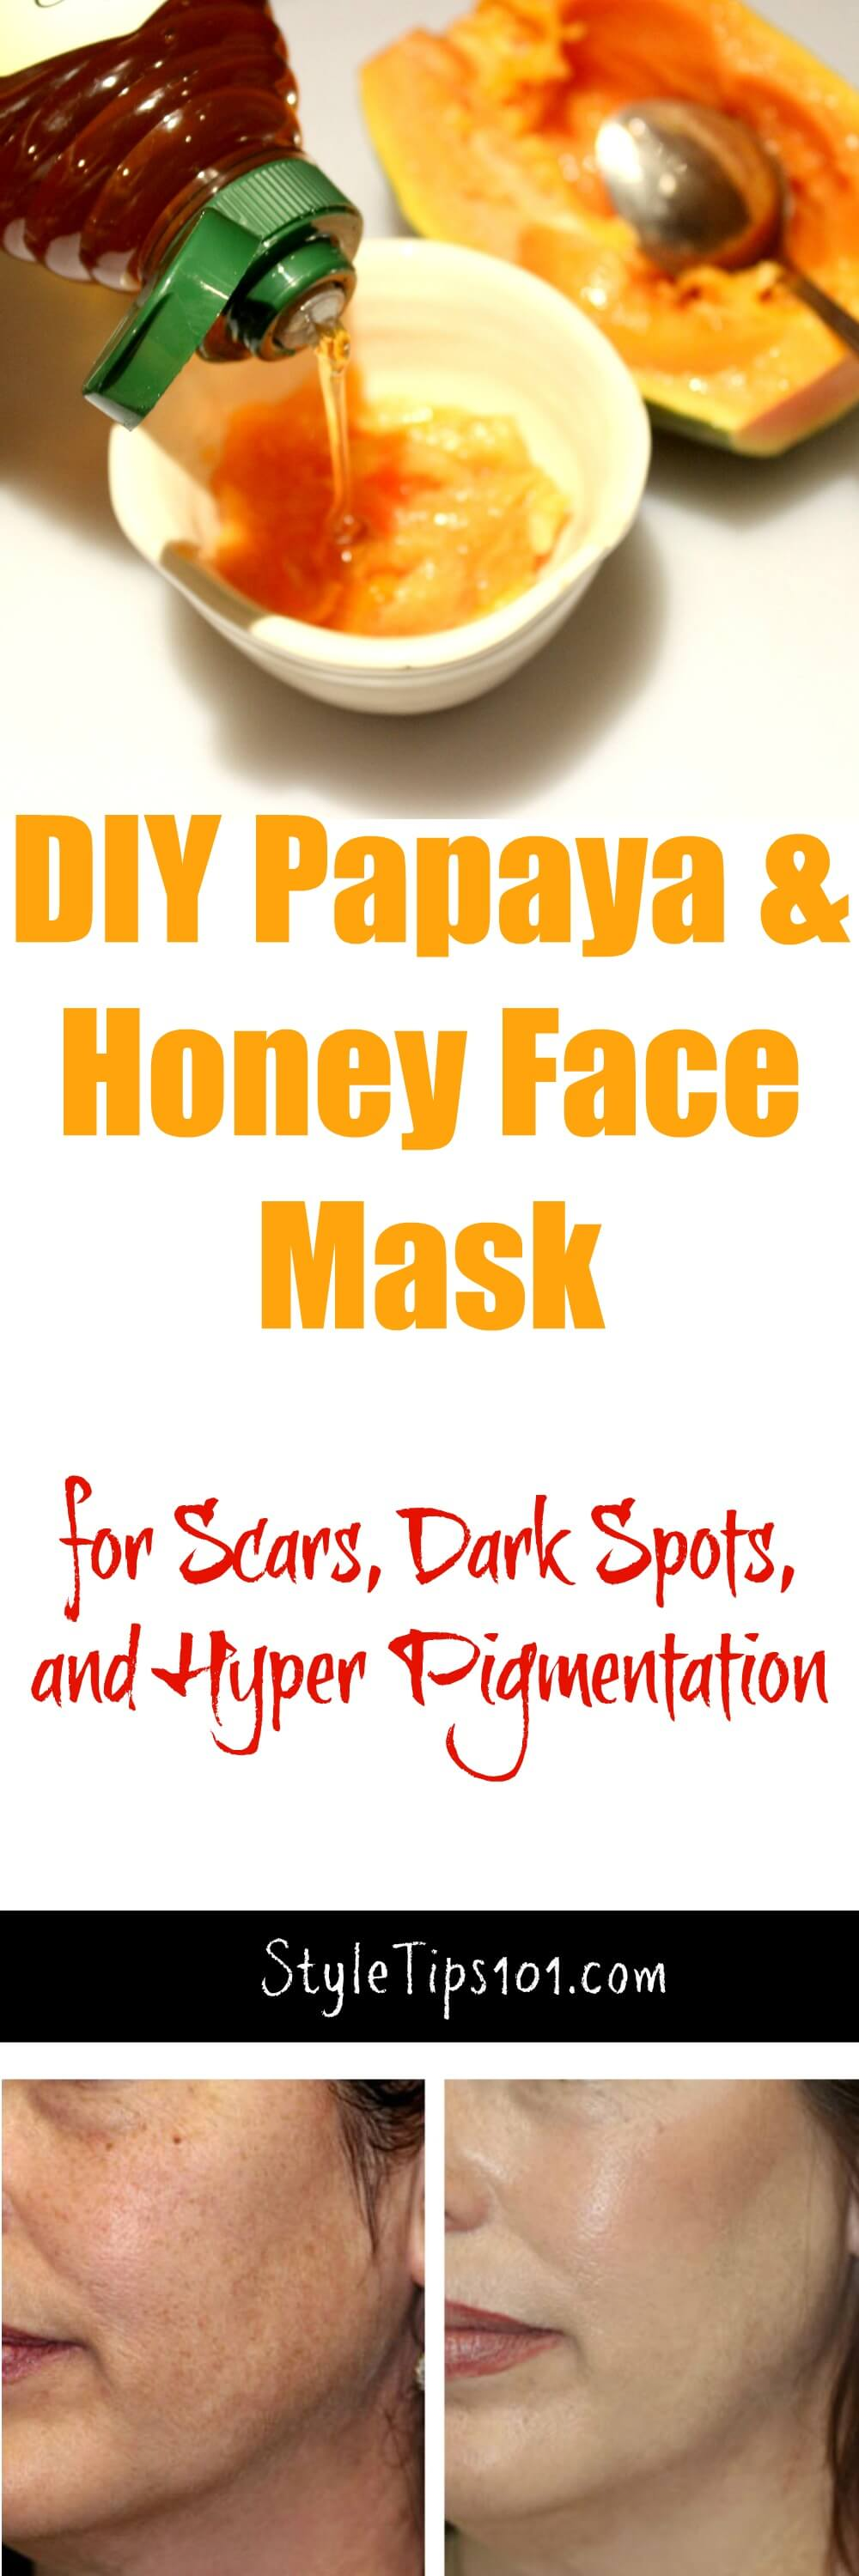 If you're looking to lighten and brighten your skin, look no further than this DIY lightening face mask with honey and papaya!